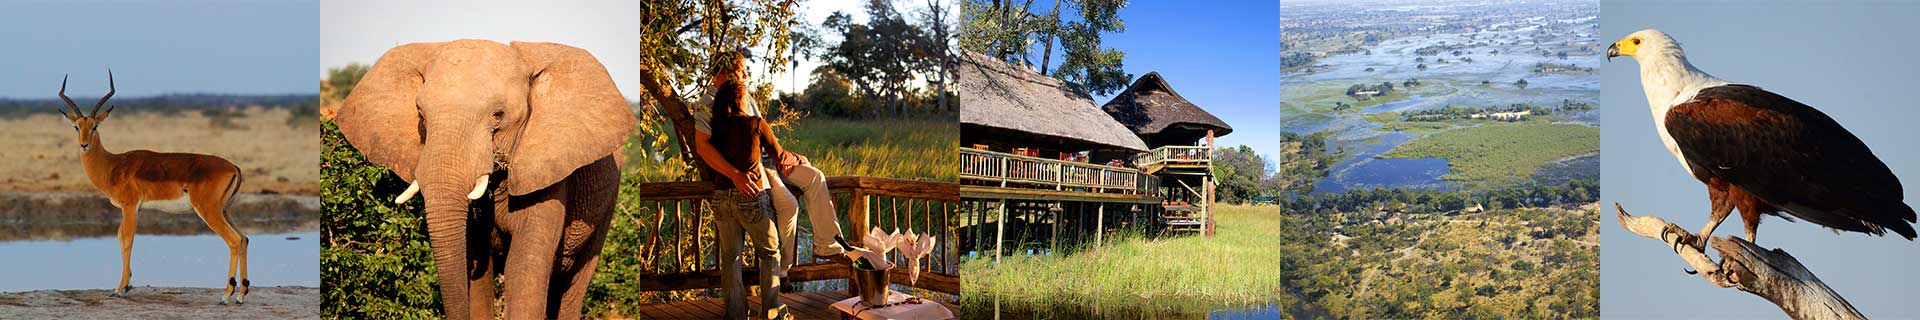 Explore-Botswana-All-Itineraries-Footer-gallery